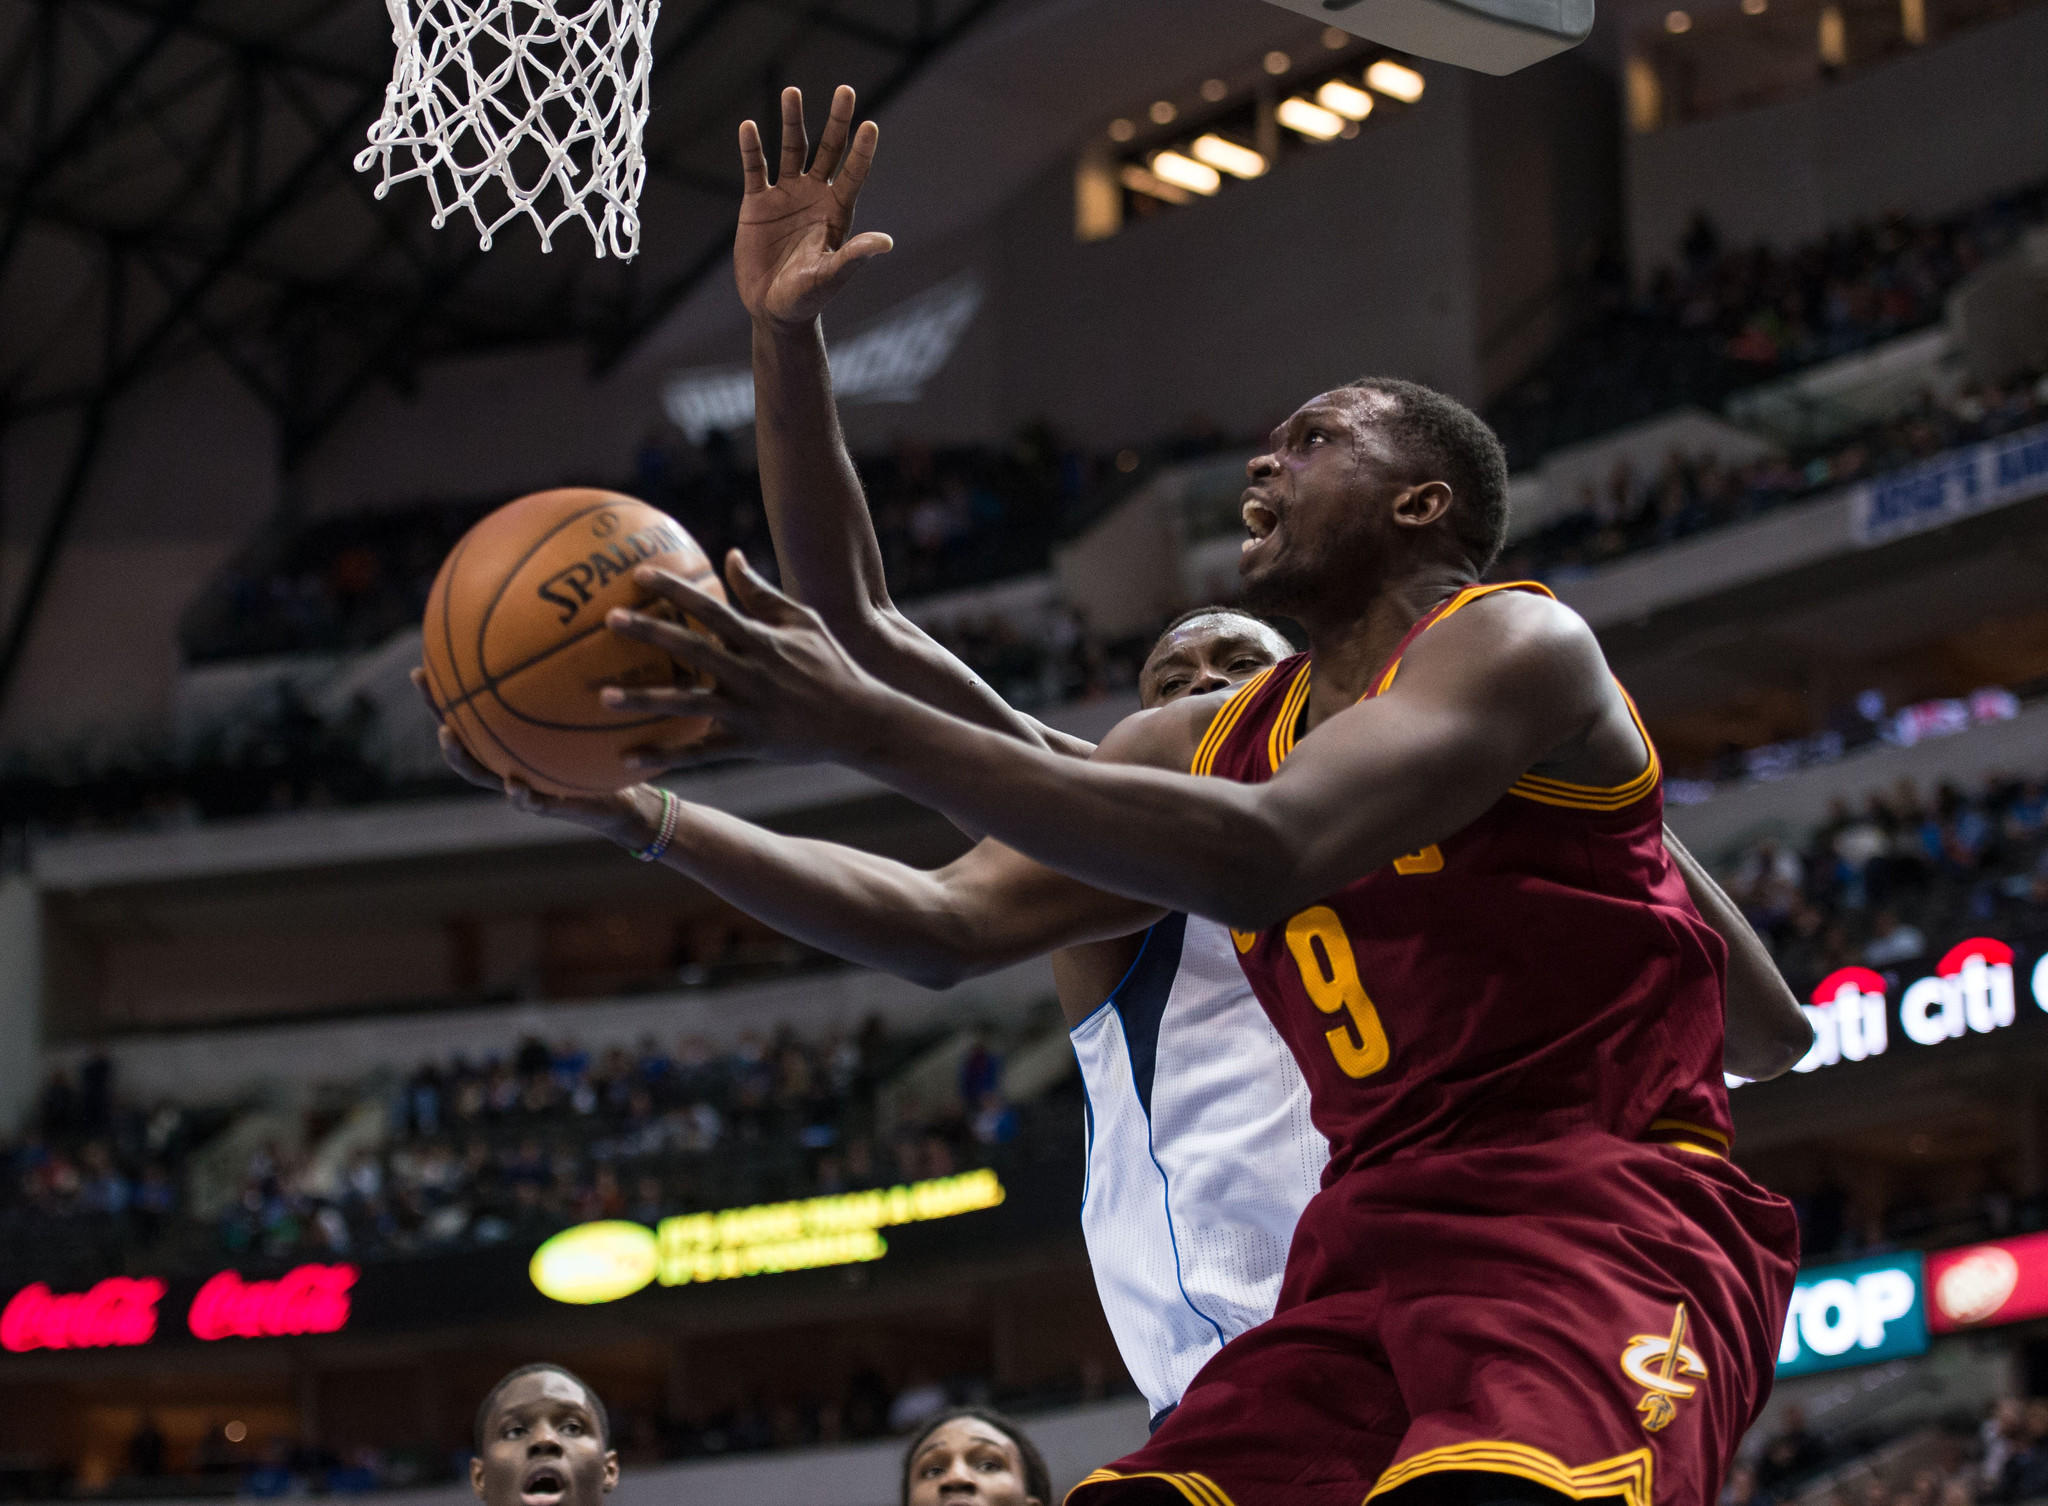 Cleveland Cavaliers small forward Luol Deng (9) drives to the basket past Dallas Mavericks center Samuel Dalembert (1) during the second half at the American Airlines Center. The Mavericks defeated the Cavaliers 124-107.